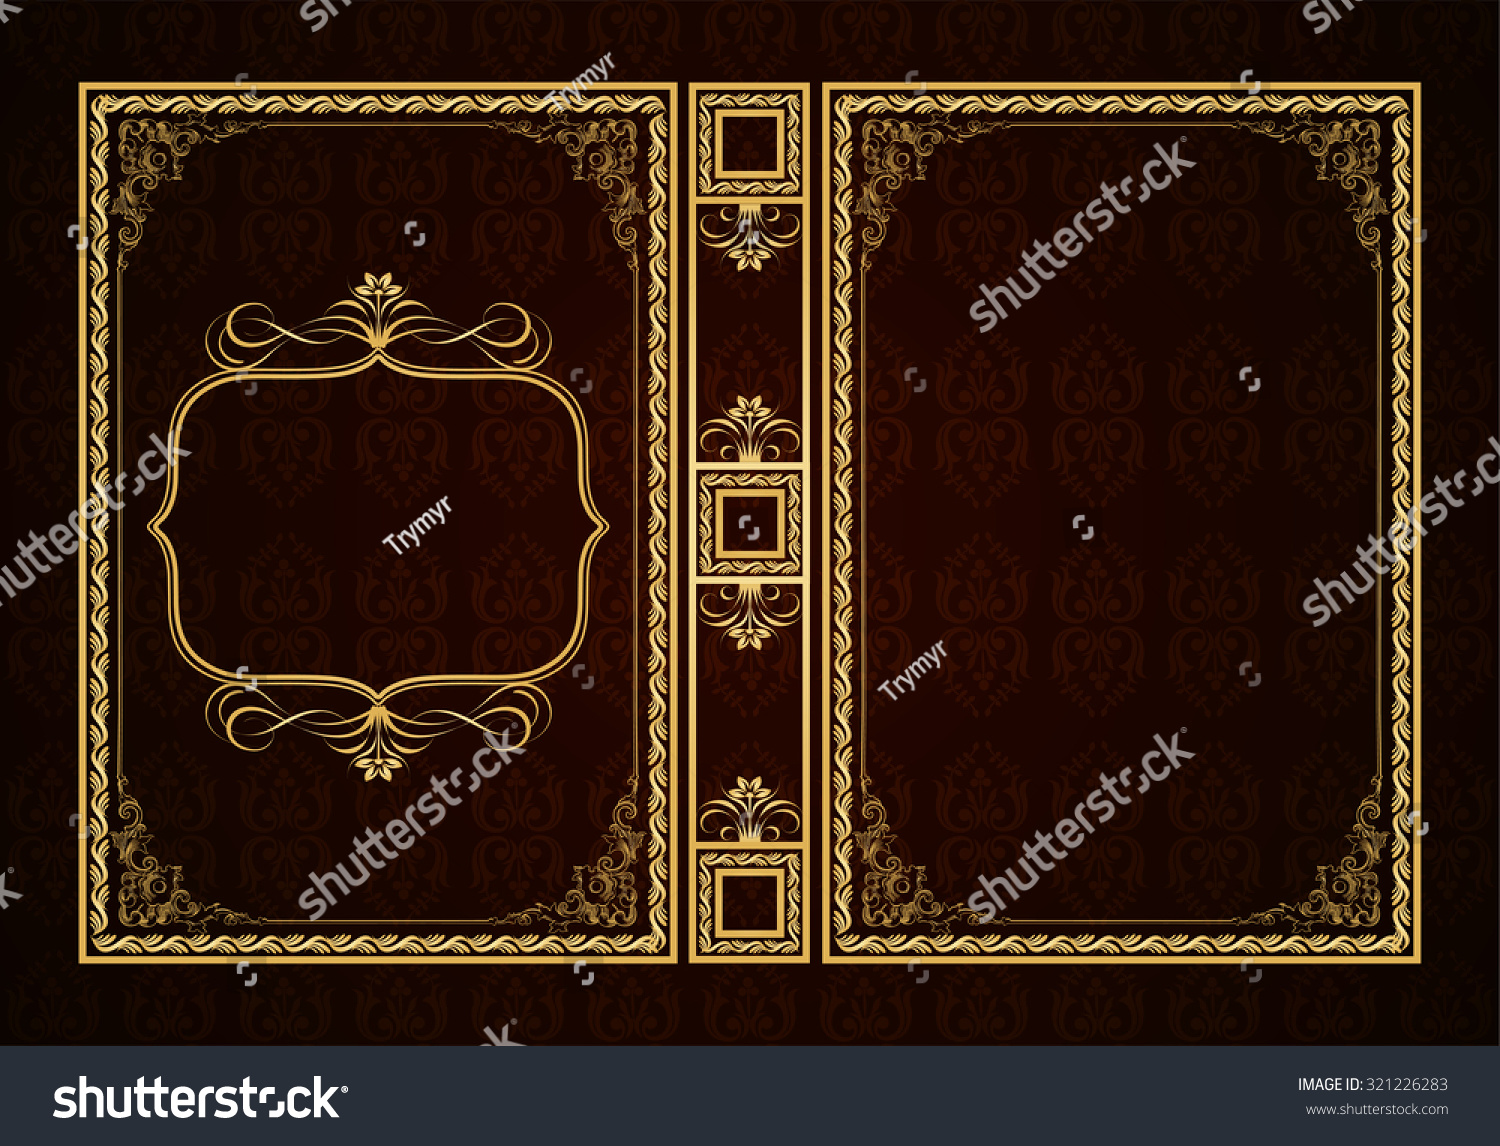 Vintage Decorative Book Cover : Vector classical book cover decorative vintage frame or